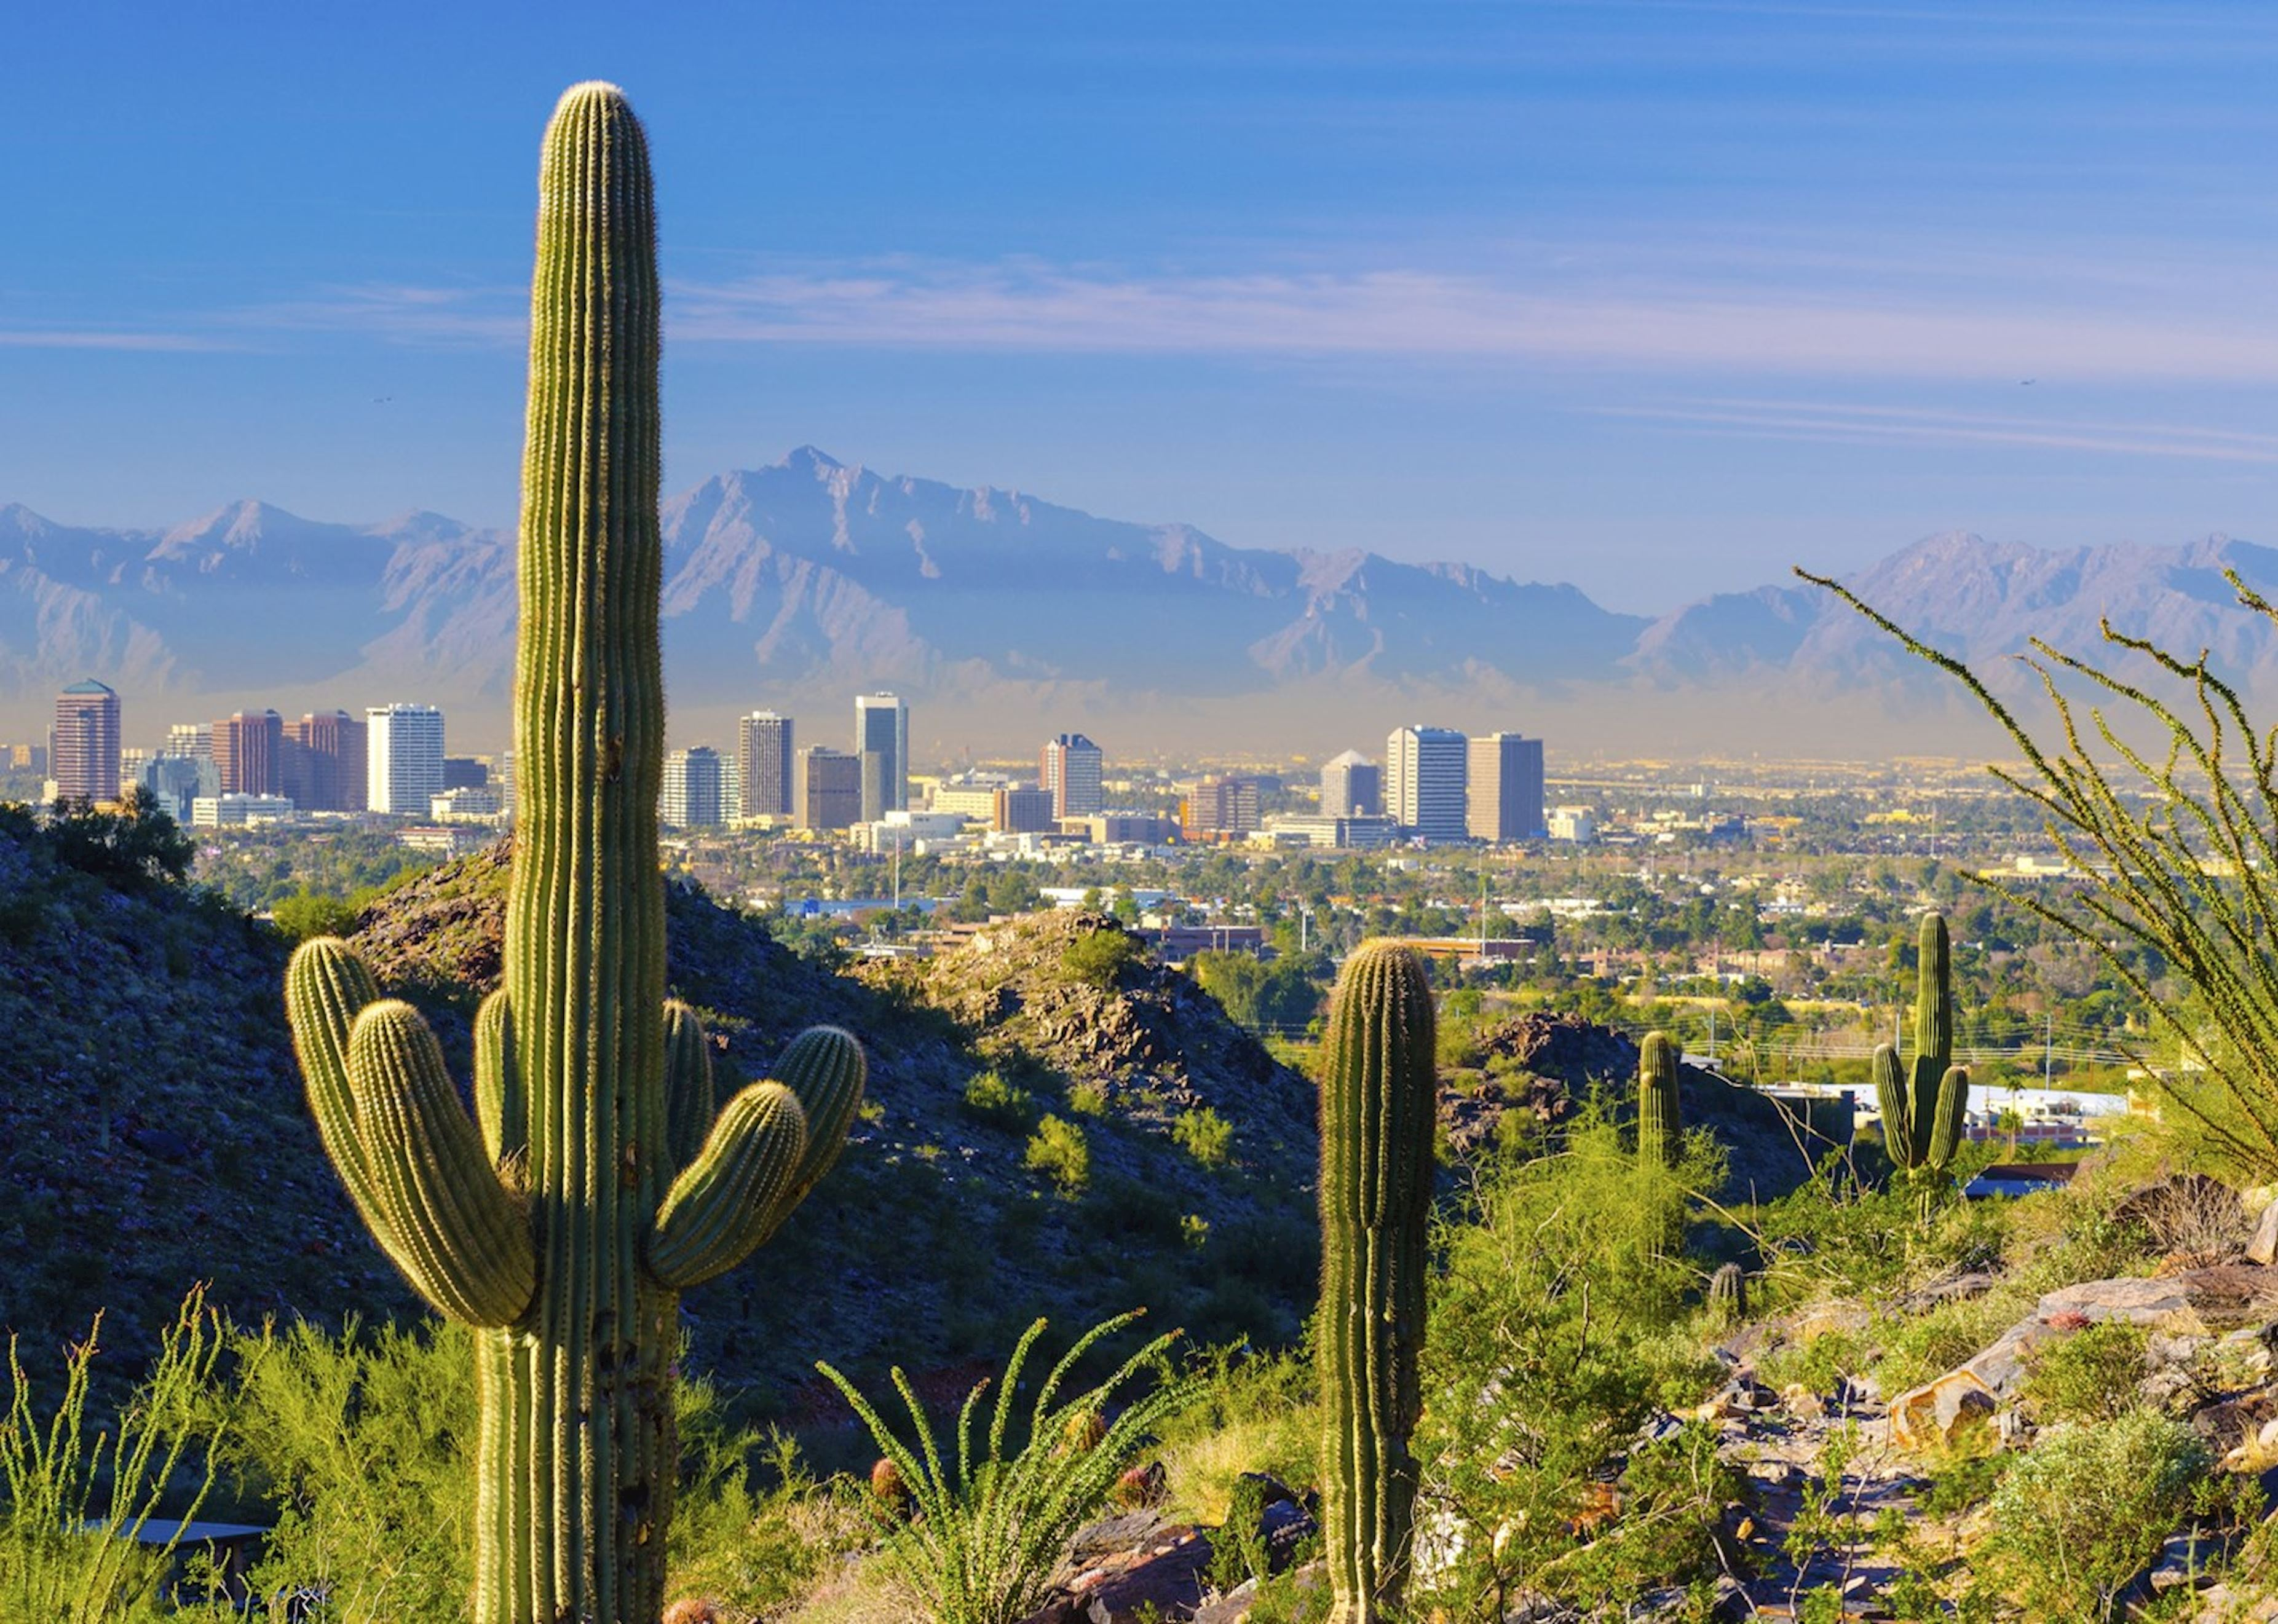 High Pollution Advisory issued for ozone effective July 16 & 17, 2021, in the Phoenix area